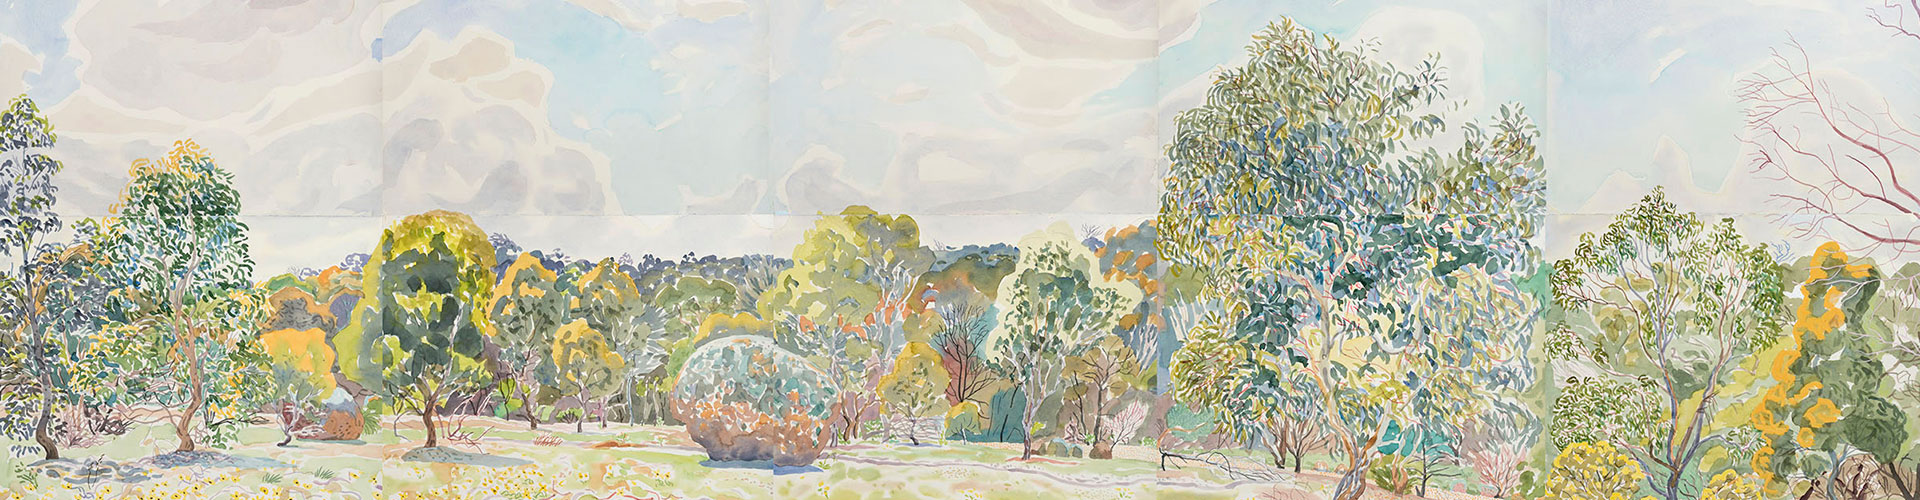 Landscape Masterclass: Watercolour and Mixed Media with Mark Dober 23 SEMPTEMBER